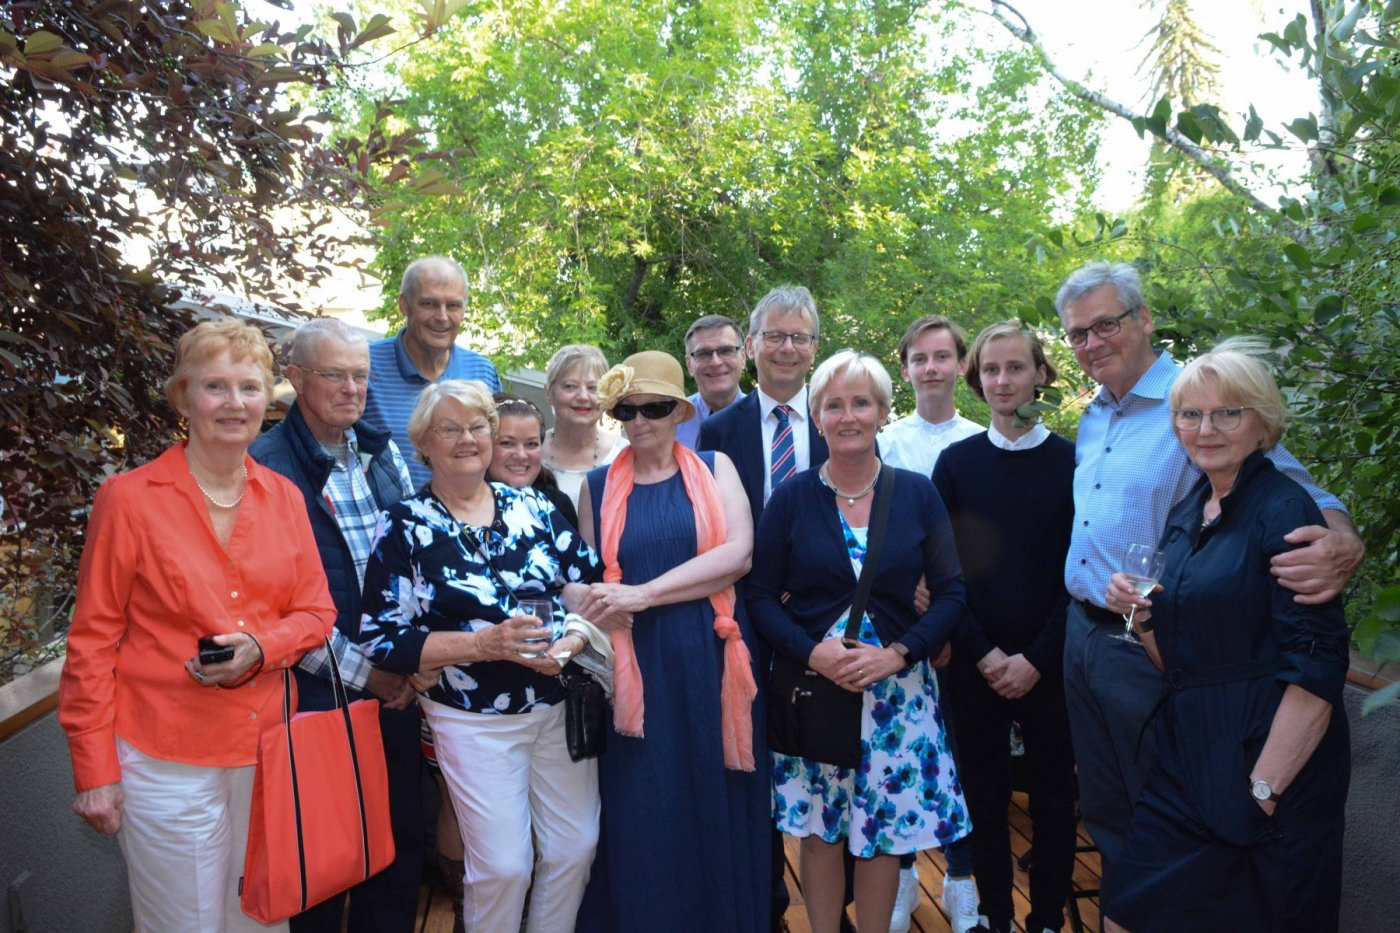 Rector had numerous sittings with alumni and friends of the university, including The Icelandic Club